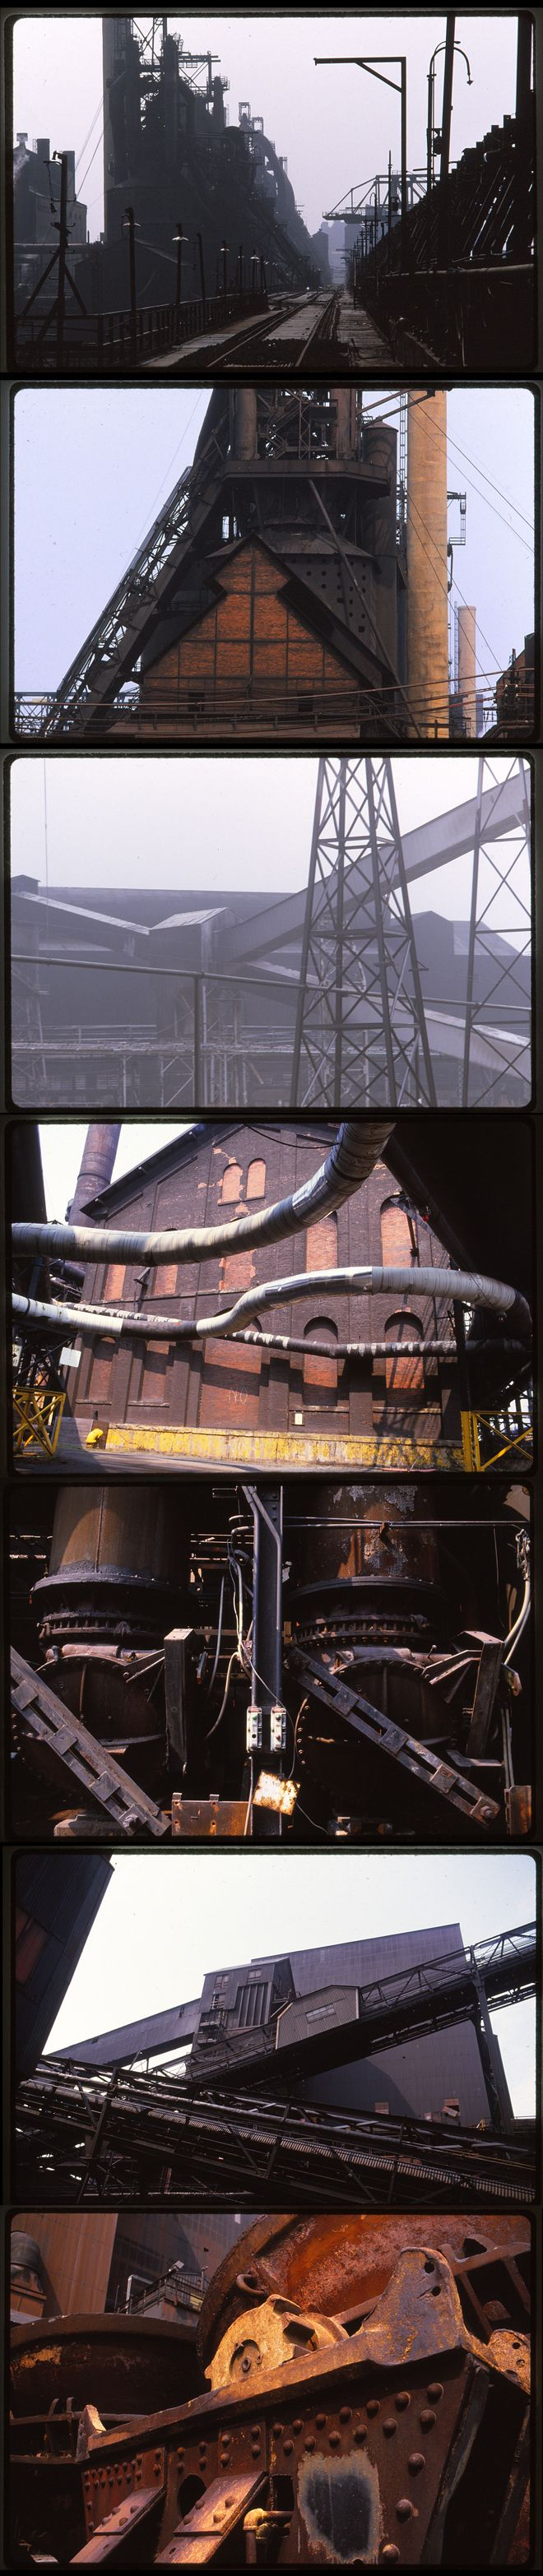 bethlehem steel beauty.